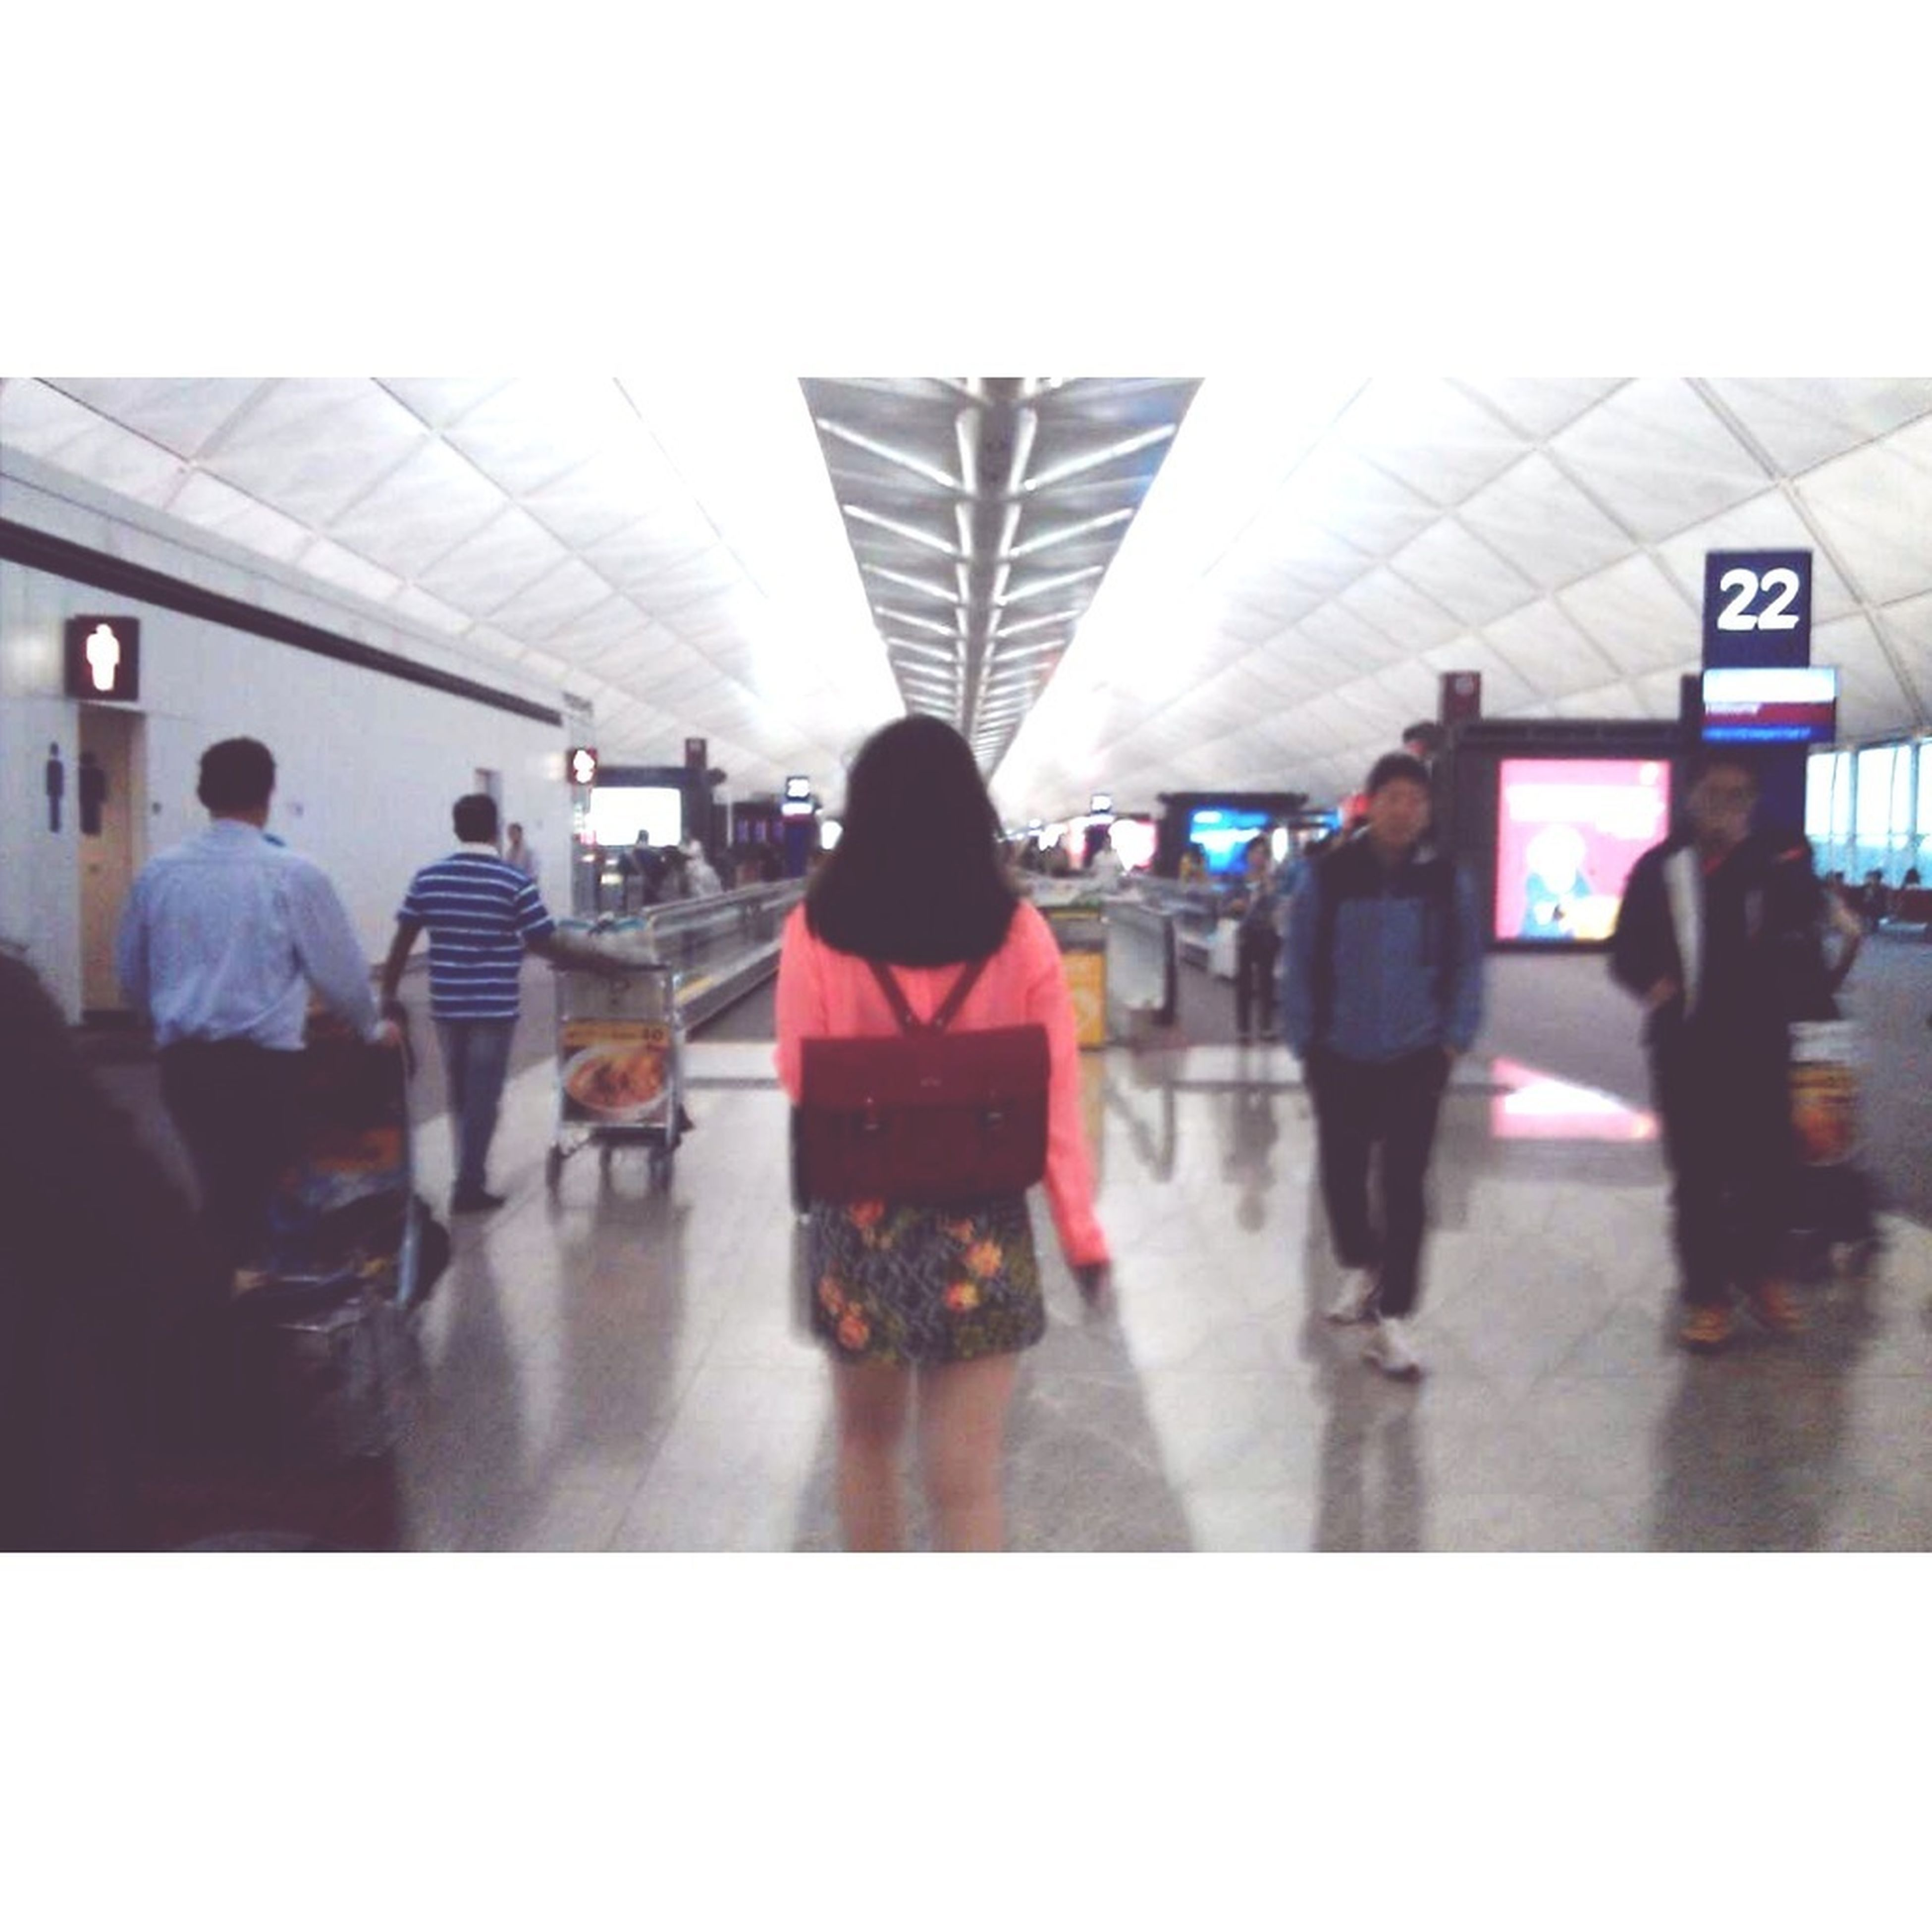 men, lifestyles, person, large group of people, walking, indoors, rear view, leisure activity, transportation, standing, public transportation, city life, medium group of people, full length, travel, passenger, casual clothing, railroad station, railroad station platform